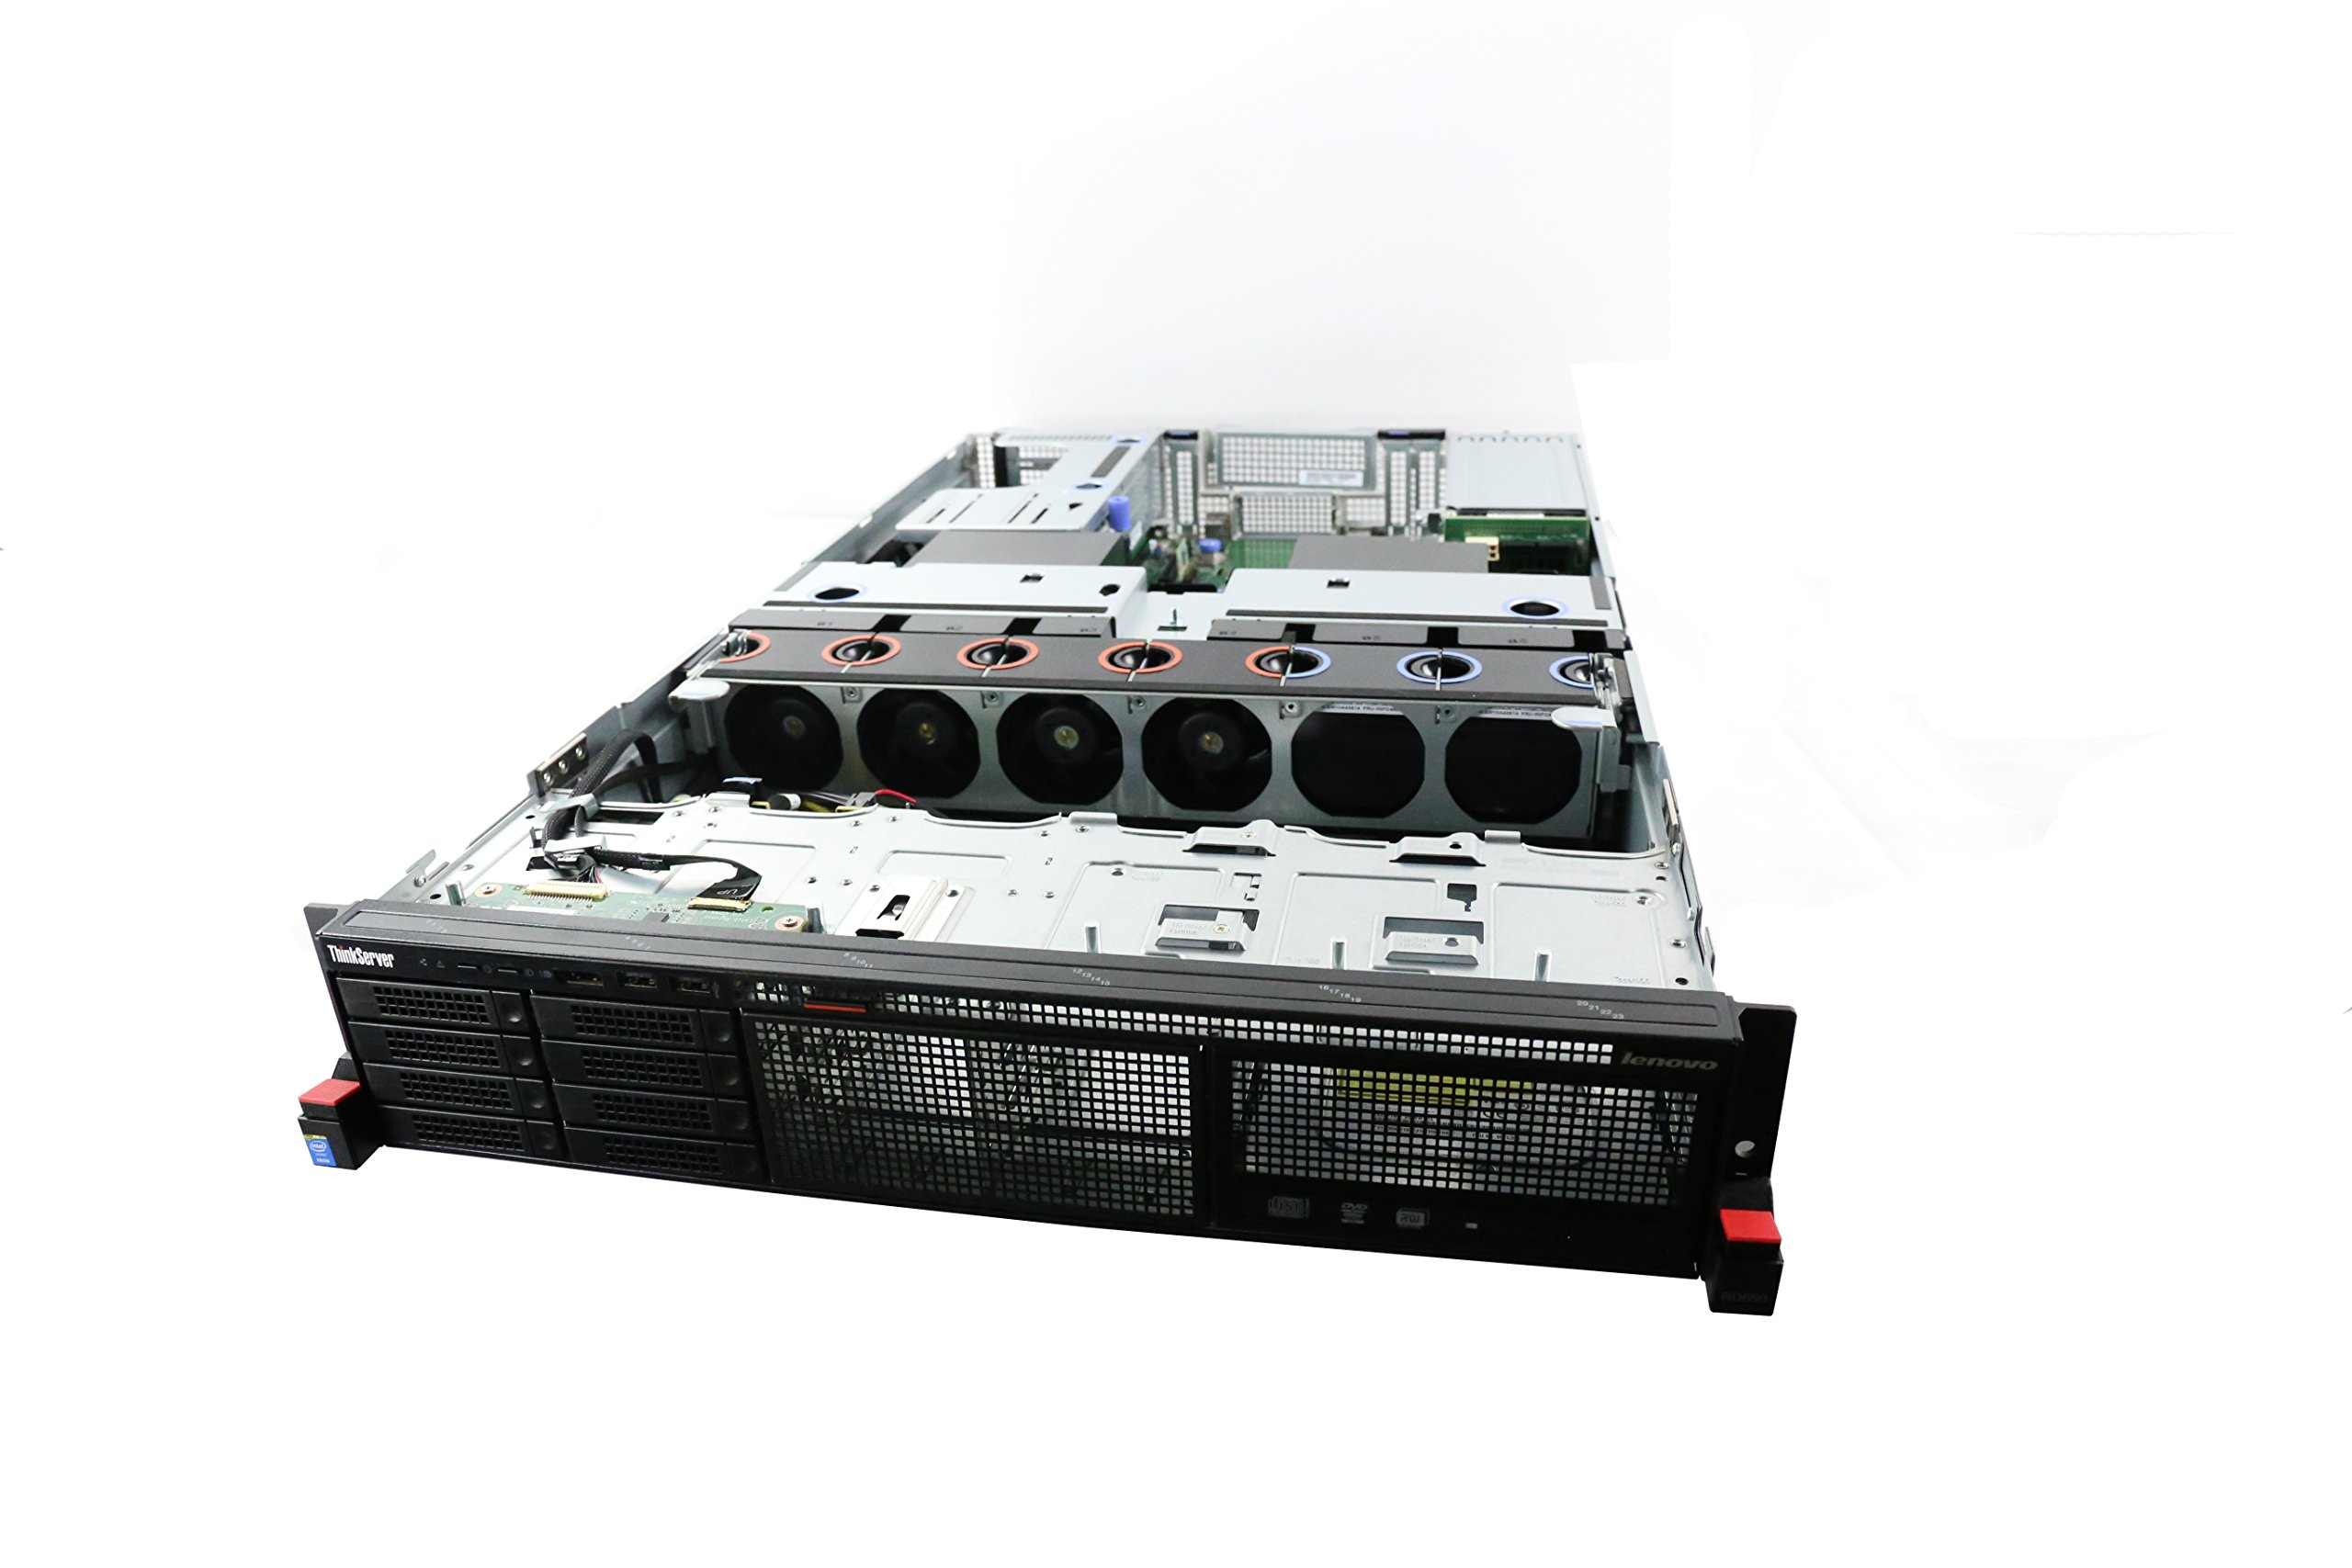 Lenovo ThinkServer RD650 70DR000RUX 2U Rack Server - 1 x Intel Xeon E5-2620 v3 Hexa-core (6 Core) 2.40 GHz